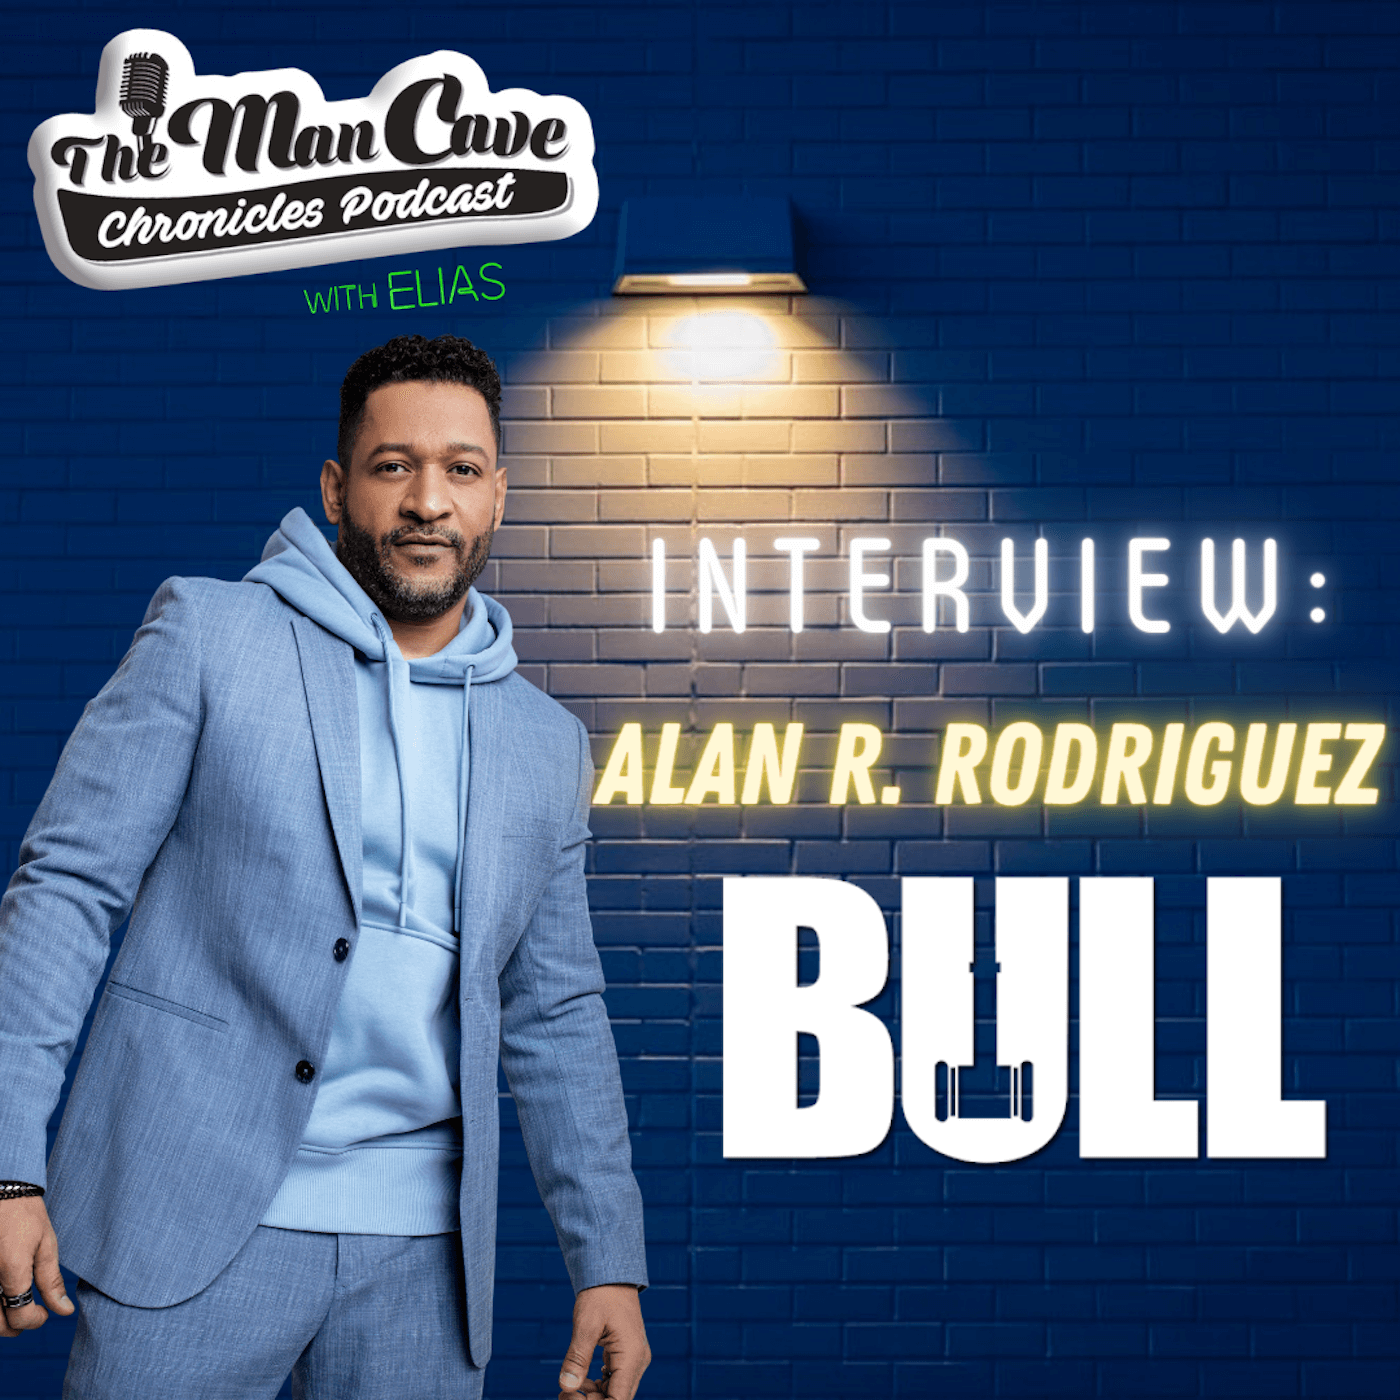 Alan R. Rodriguez talks about his role on CBS's Bull and more!